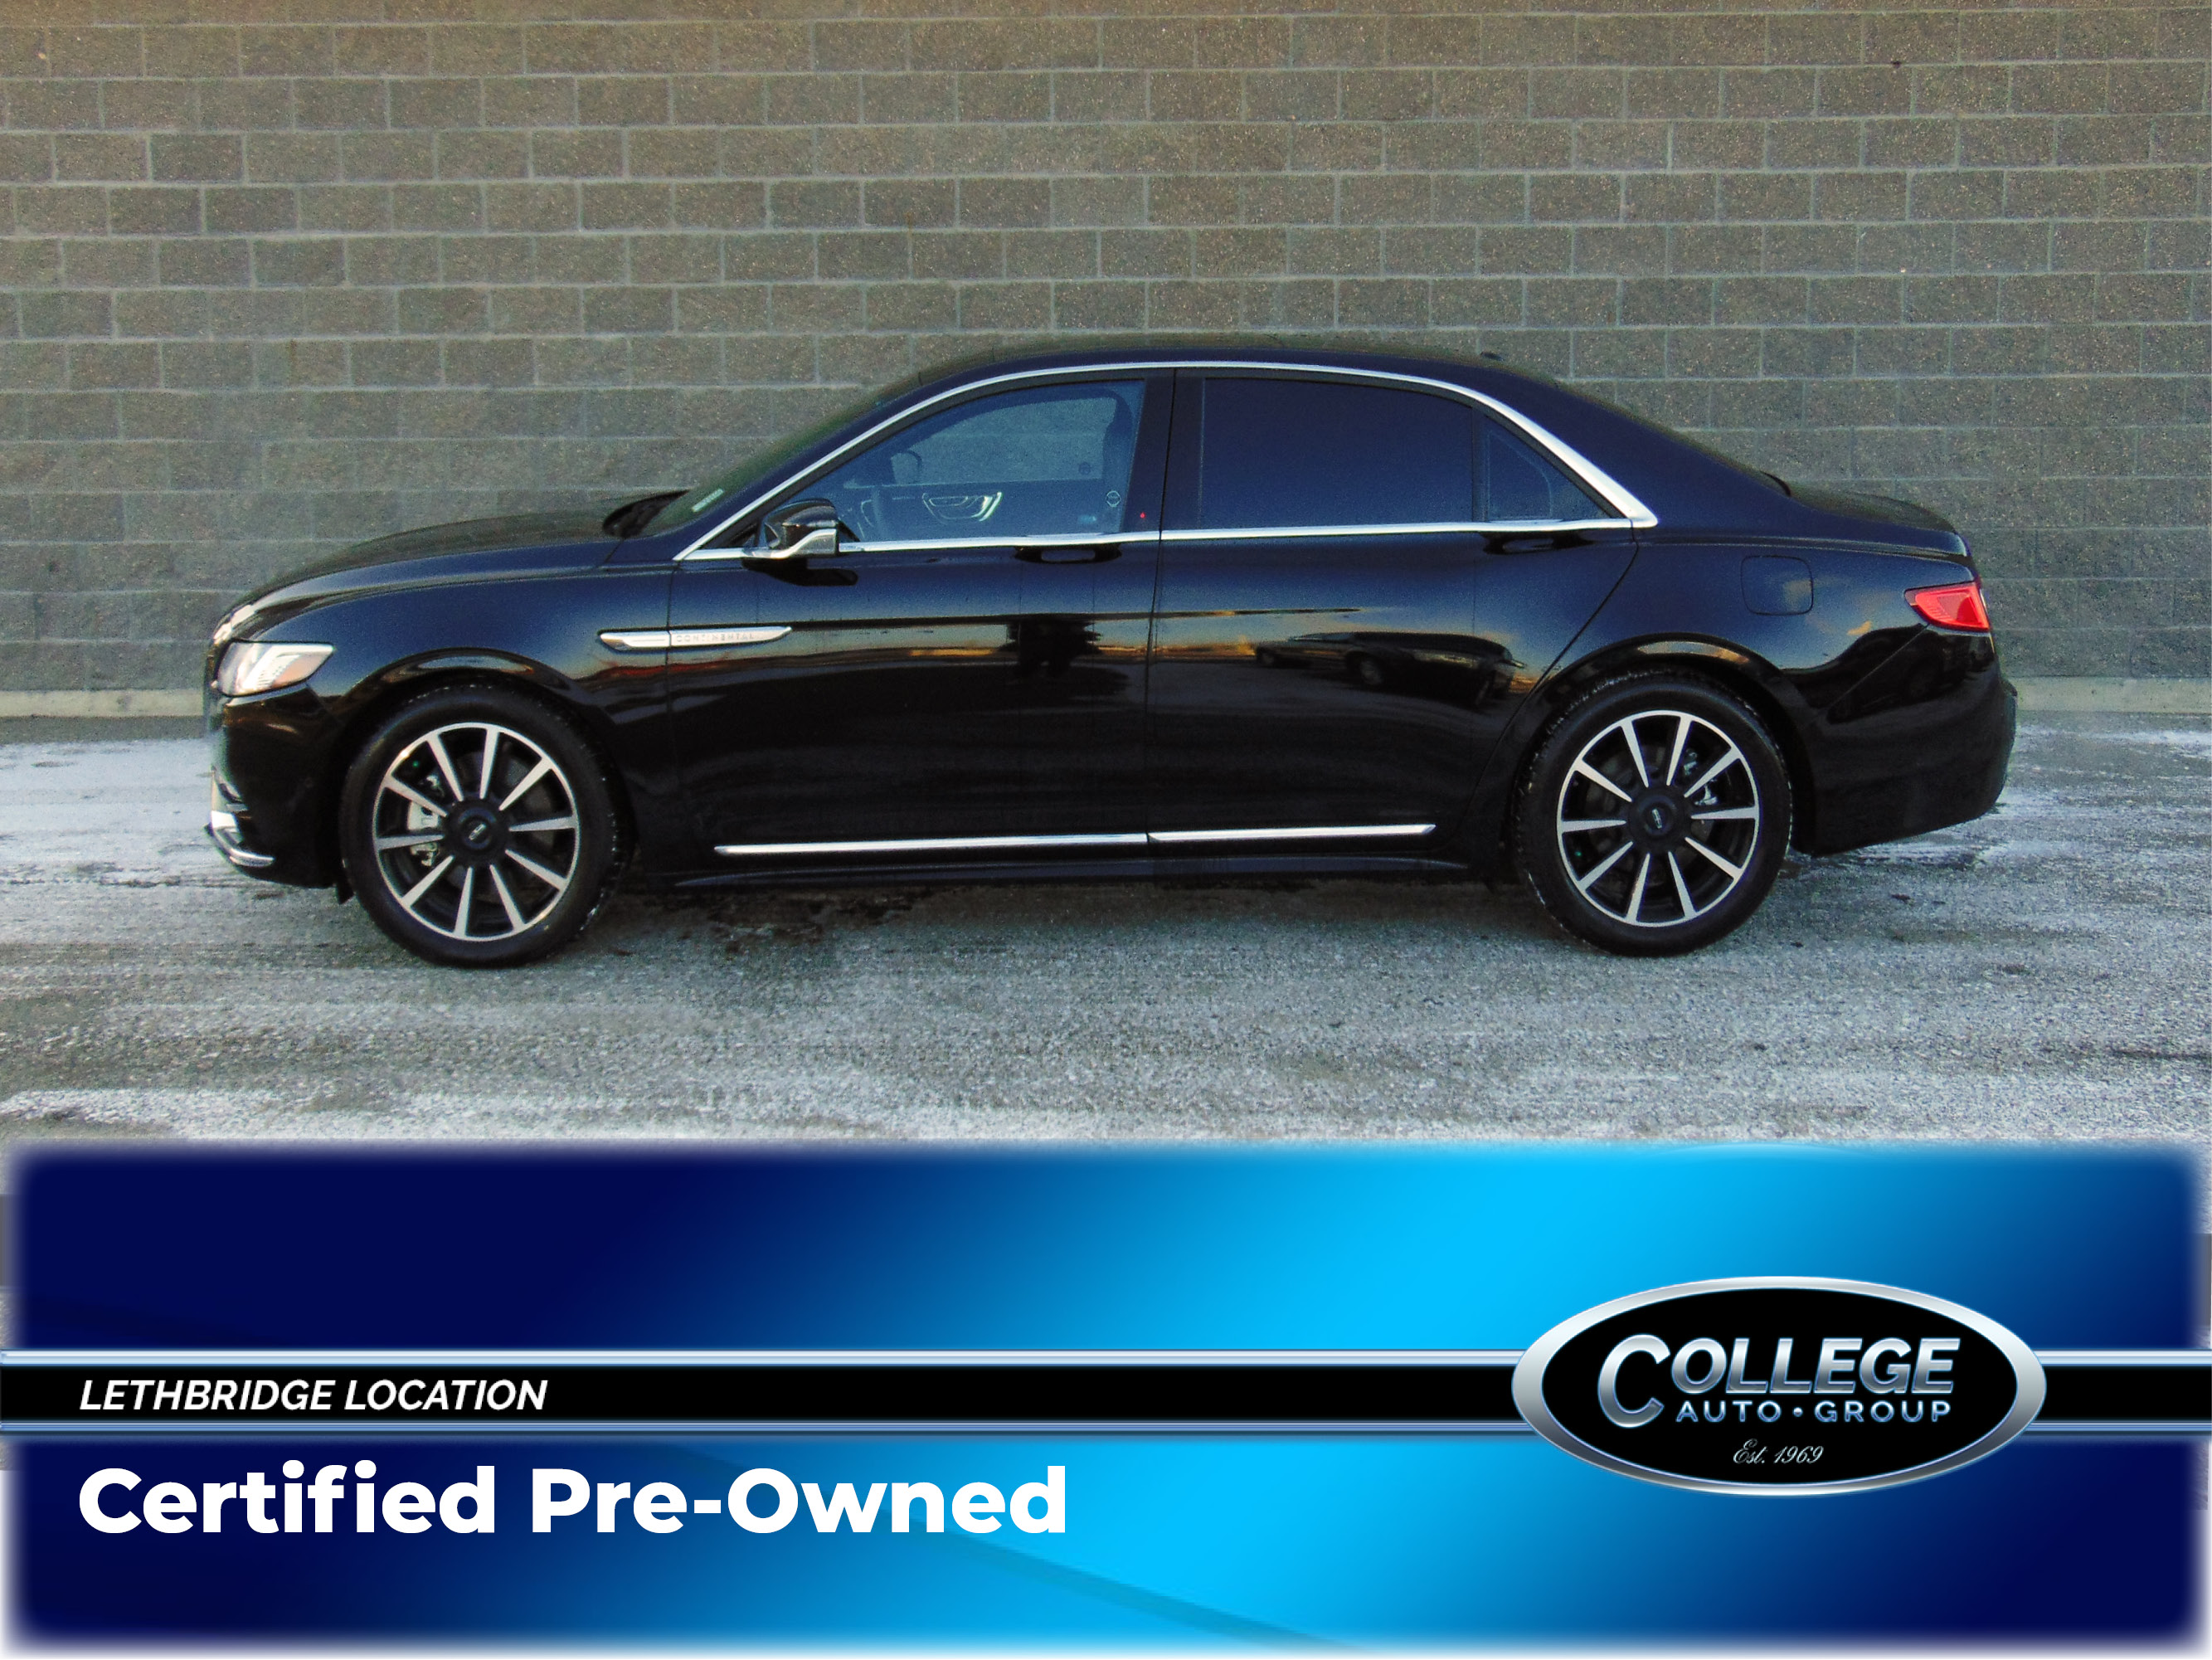 specials freehold in irwin nj mkx dealership htm mercury lincoln new lease